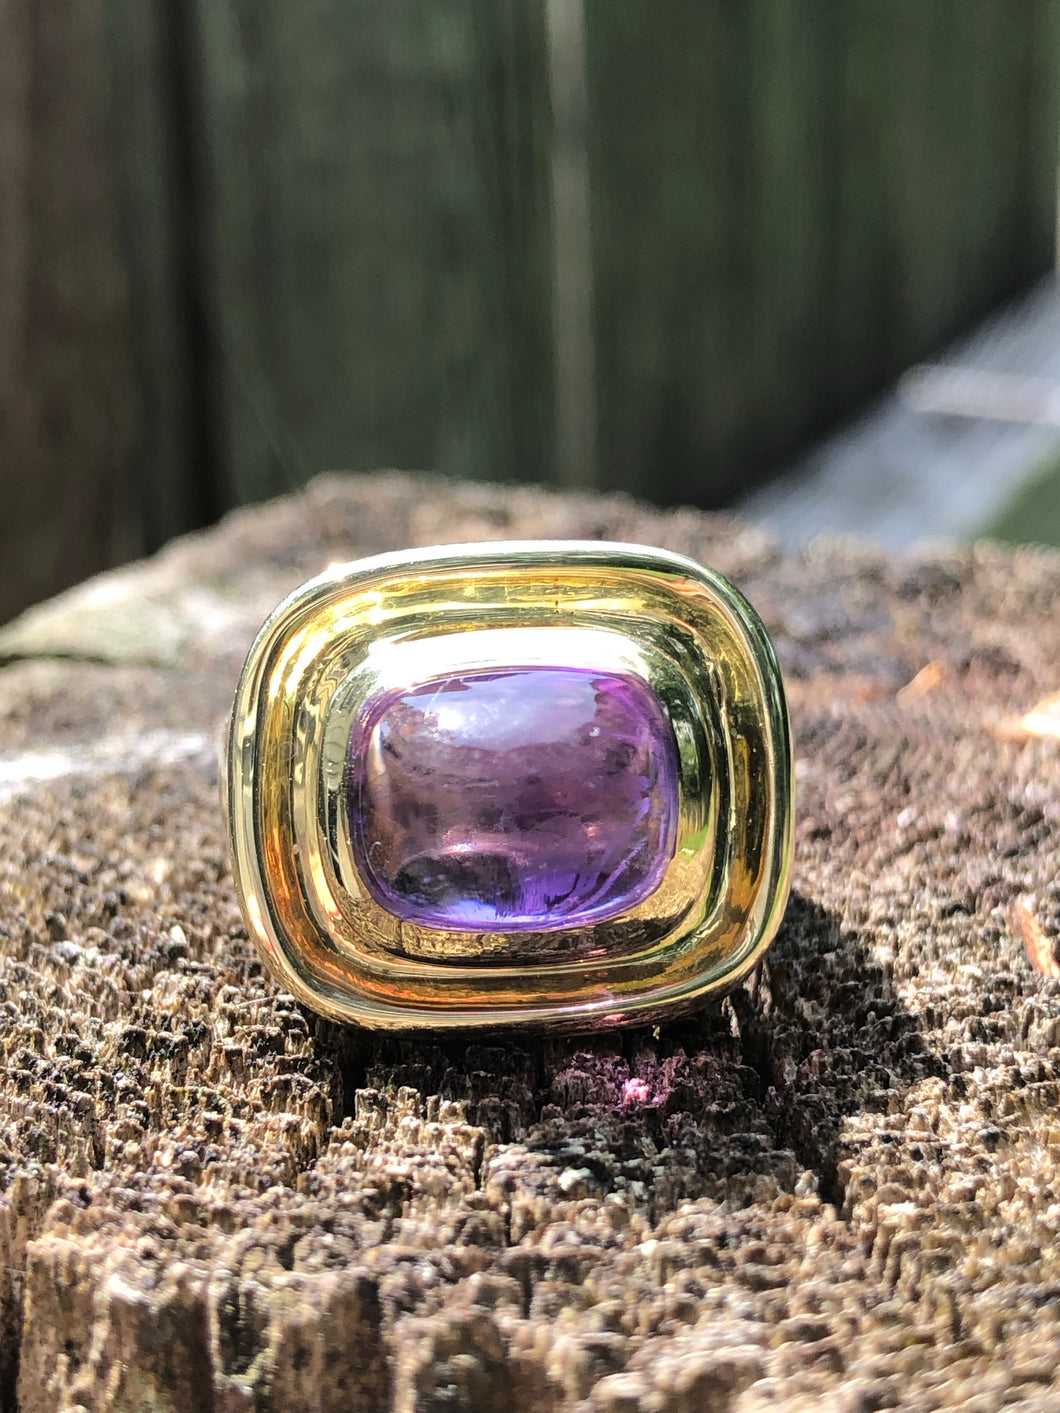 14k Gold 3.20 carat Amethyst Ring